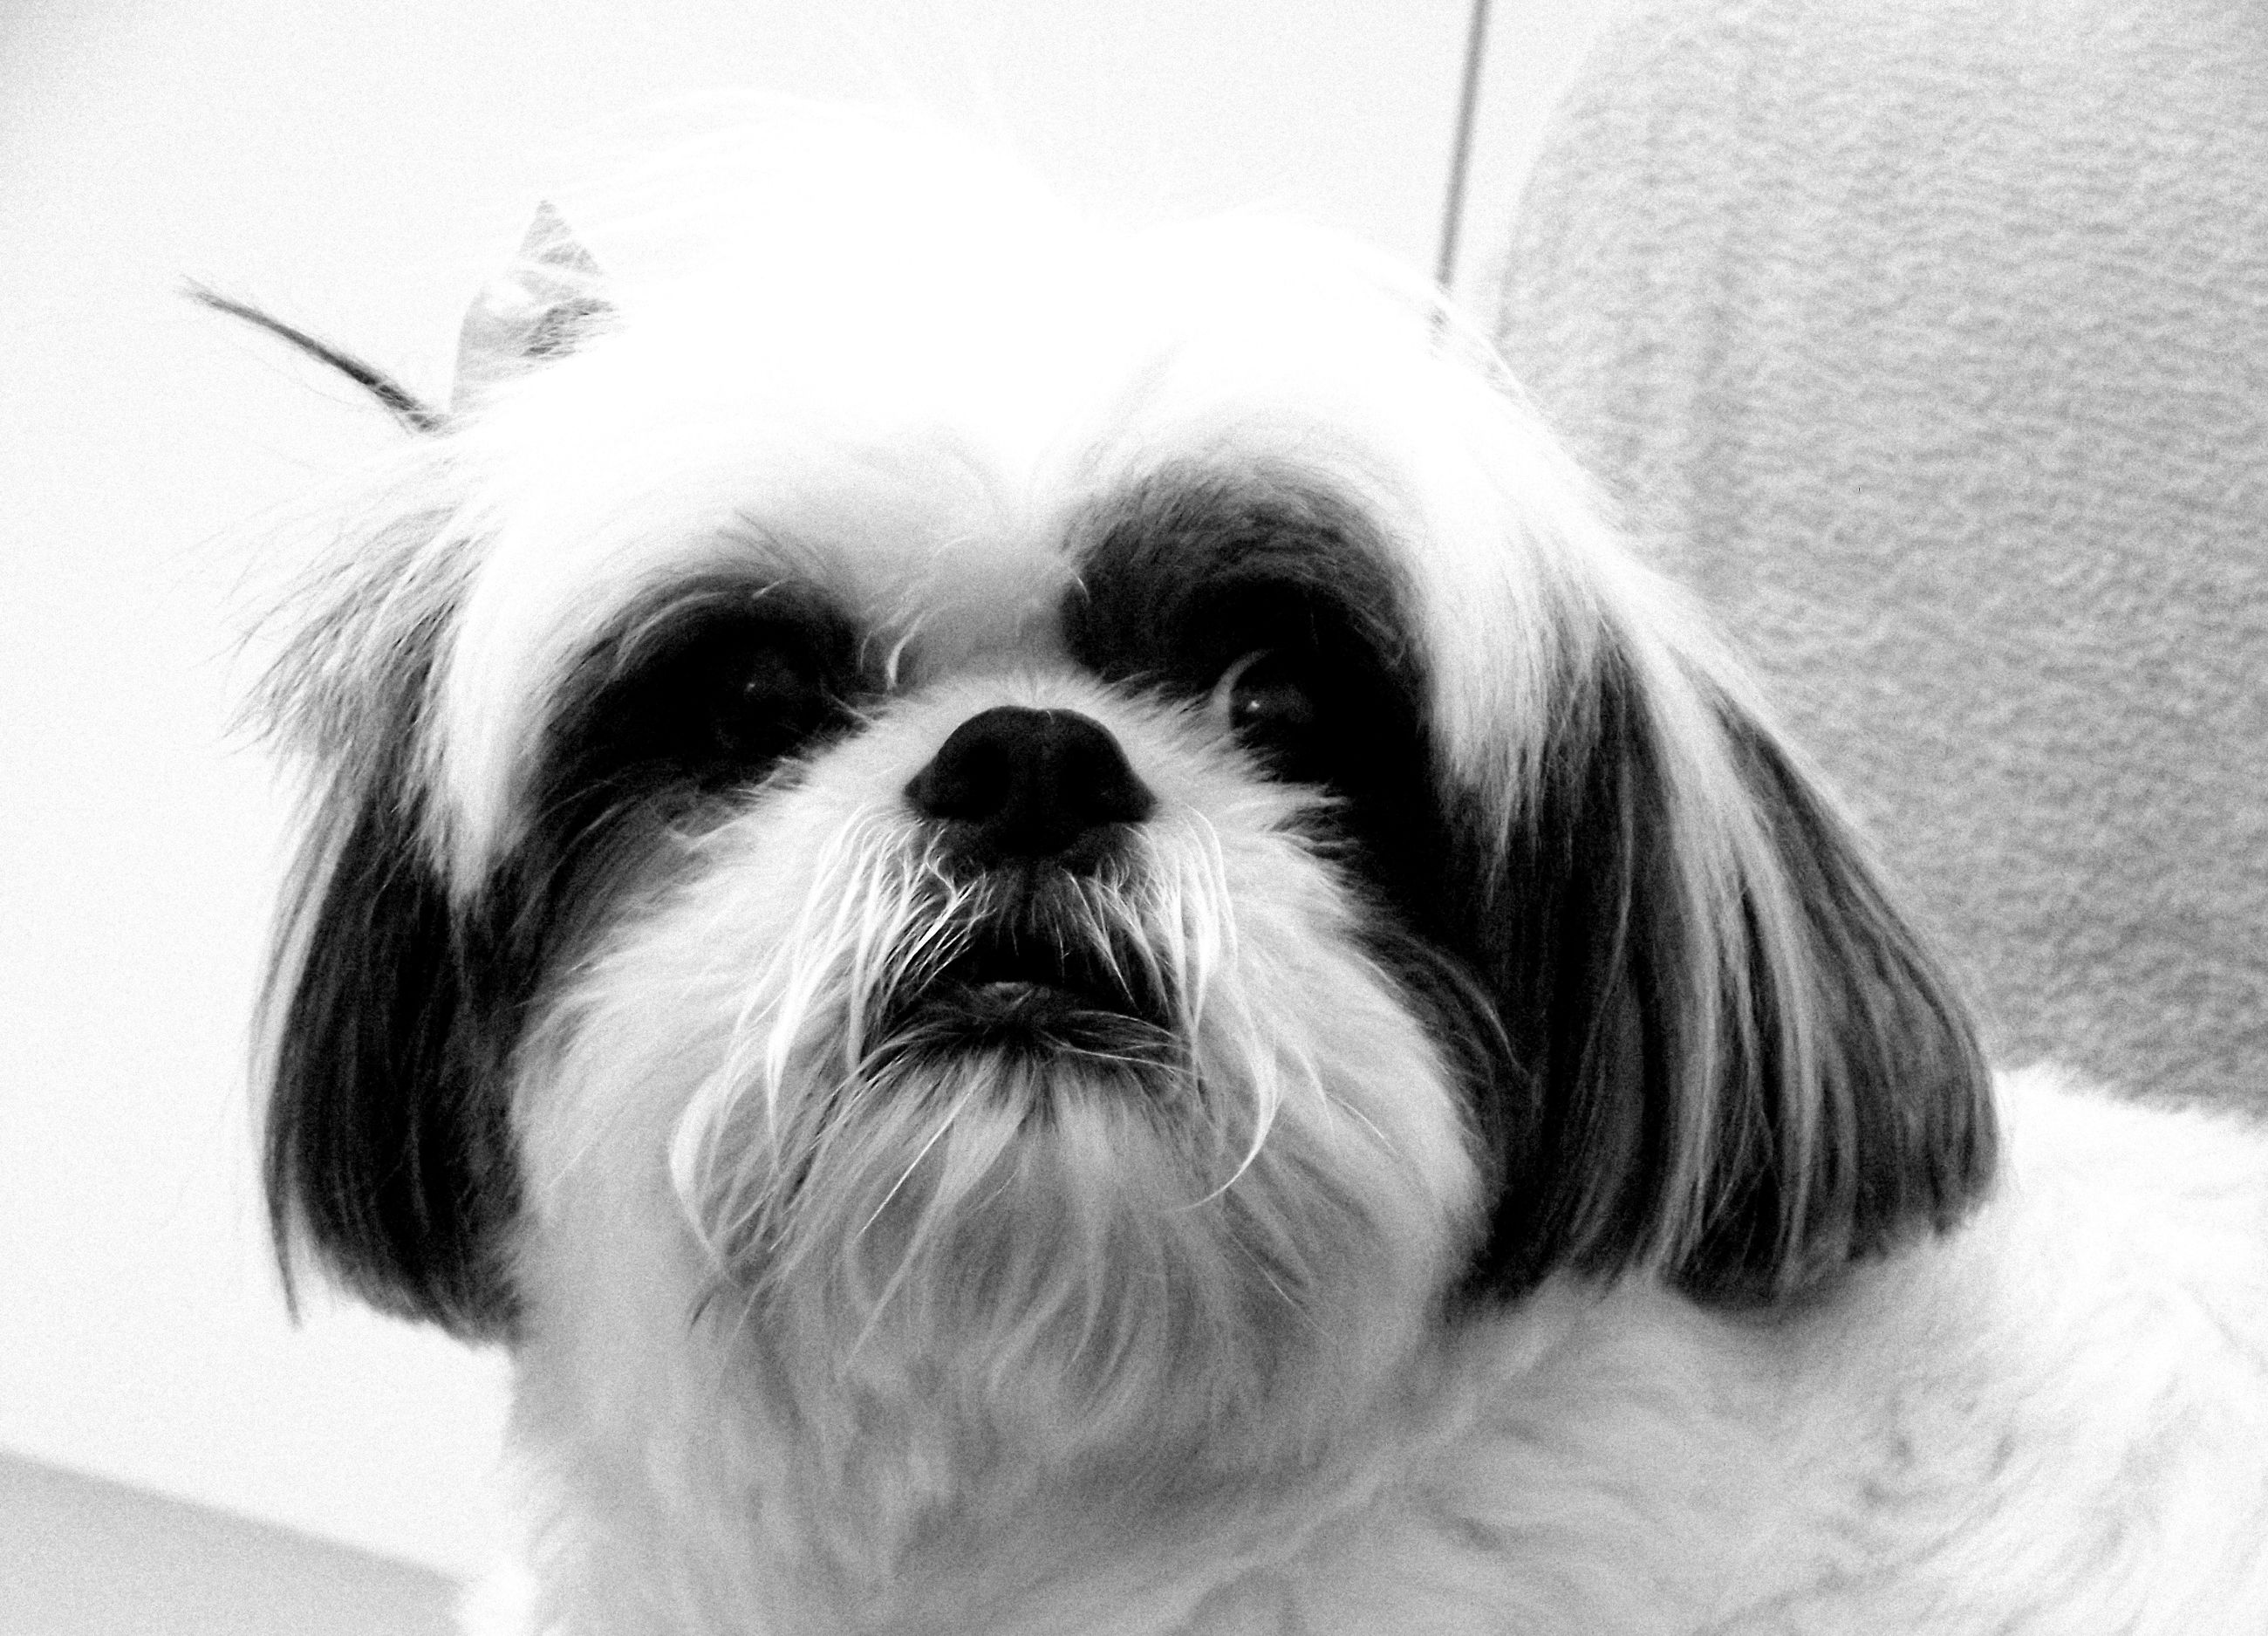 indoors, close-up, headshot, looking at camera, domestic animals, portrait, front view, animal hair, pets, lifestyles, wall - building feature, home interior, part of, mammal, human hair, day, focus on foreground, dog